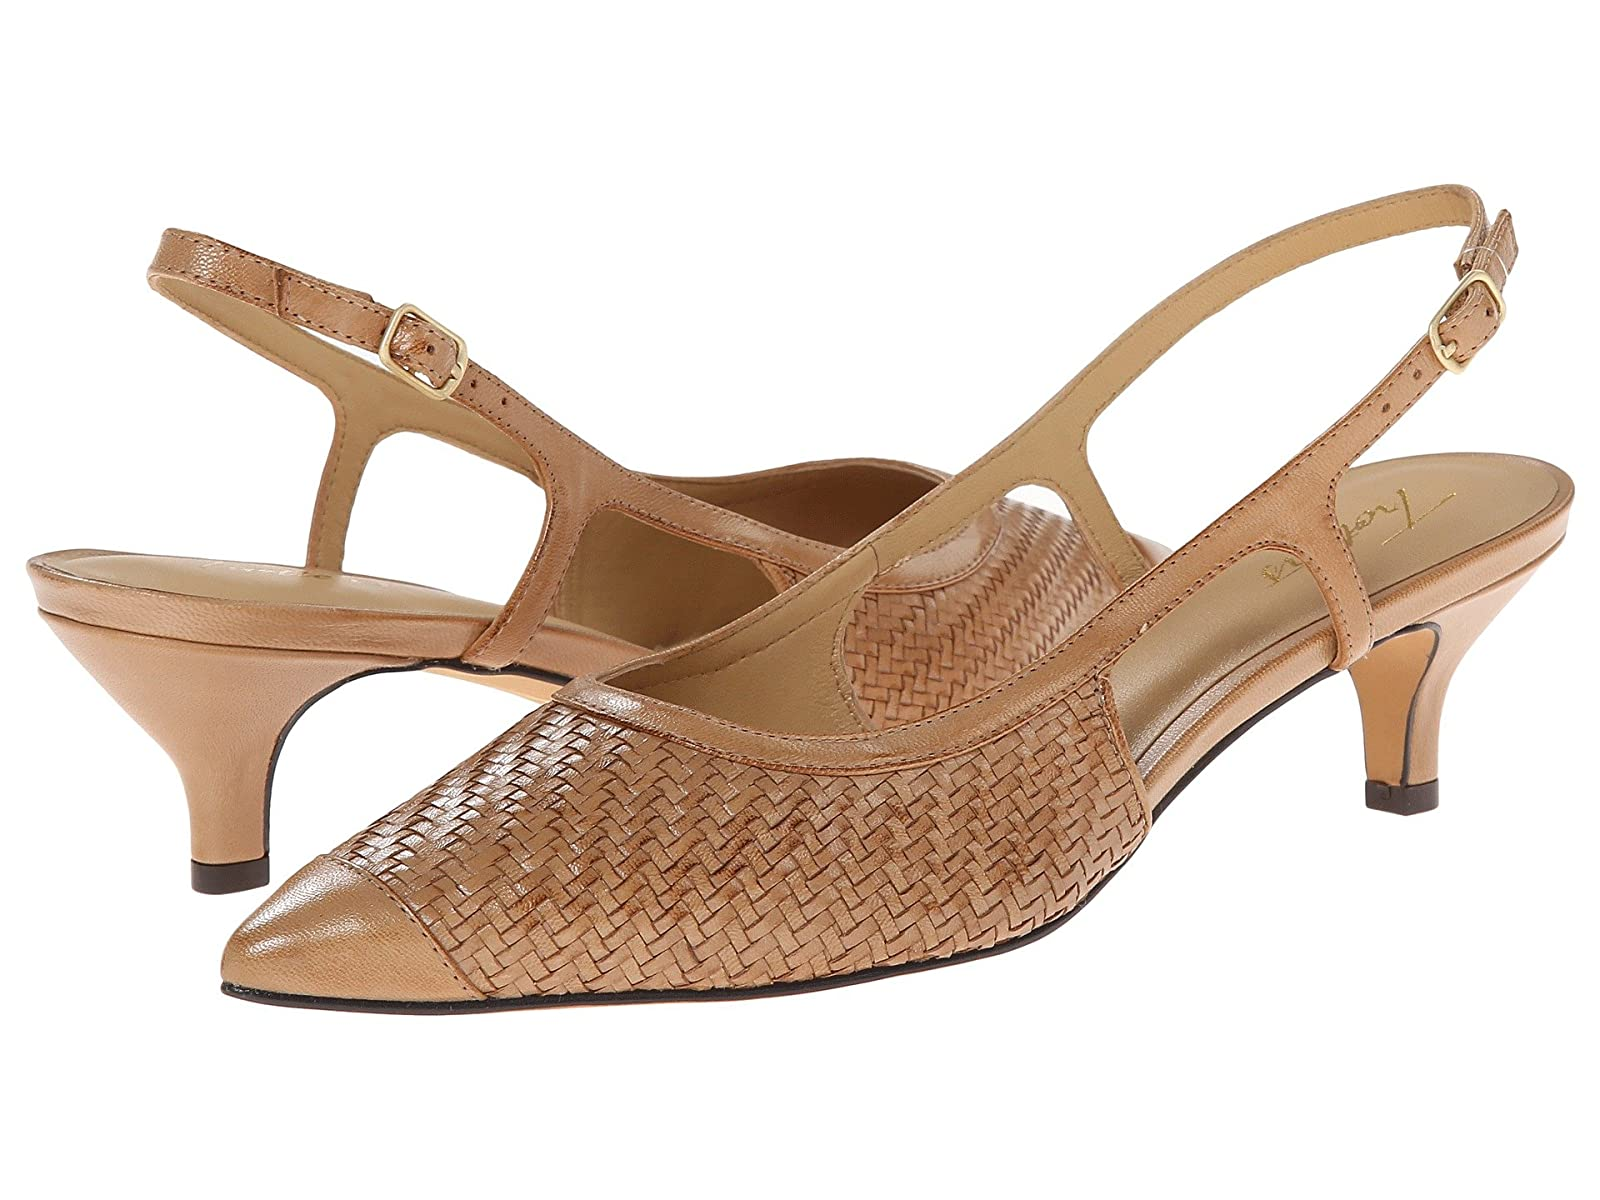 Trotters KimberlyCheap and distinctive eye-catching shoes